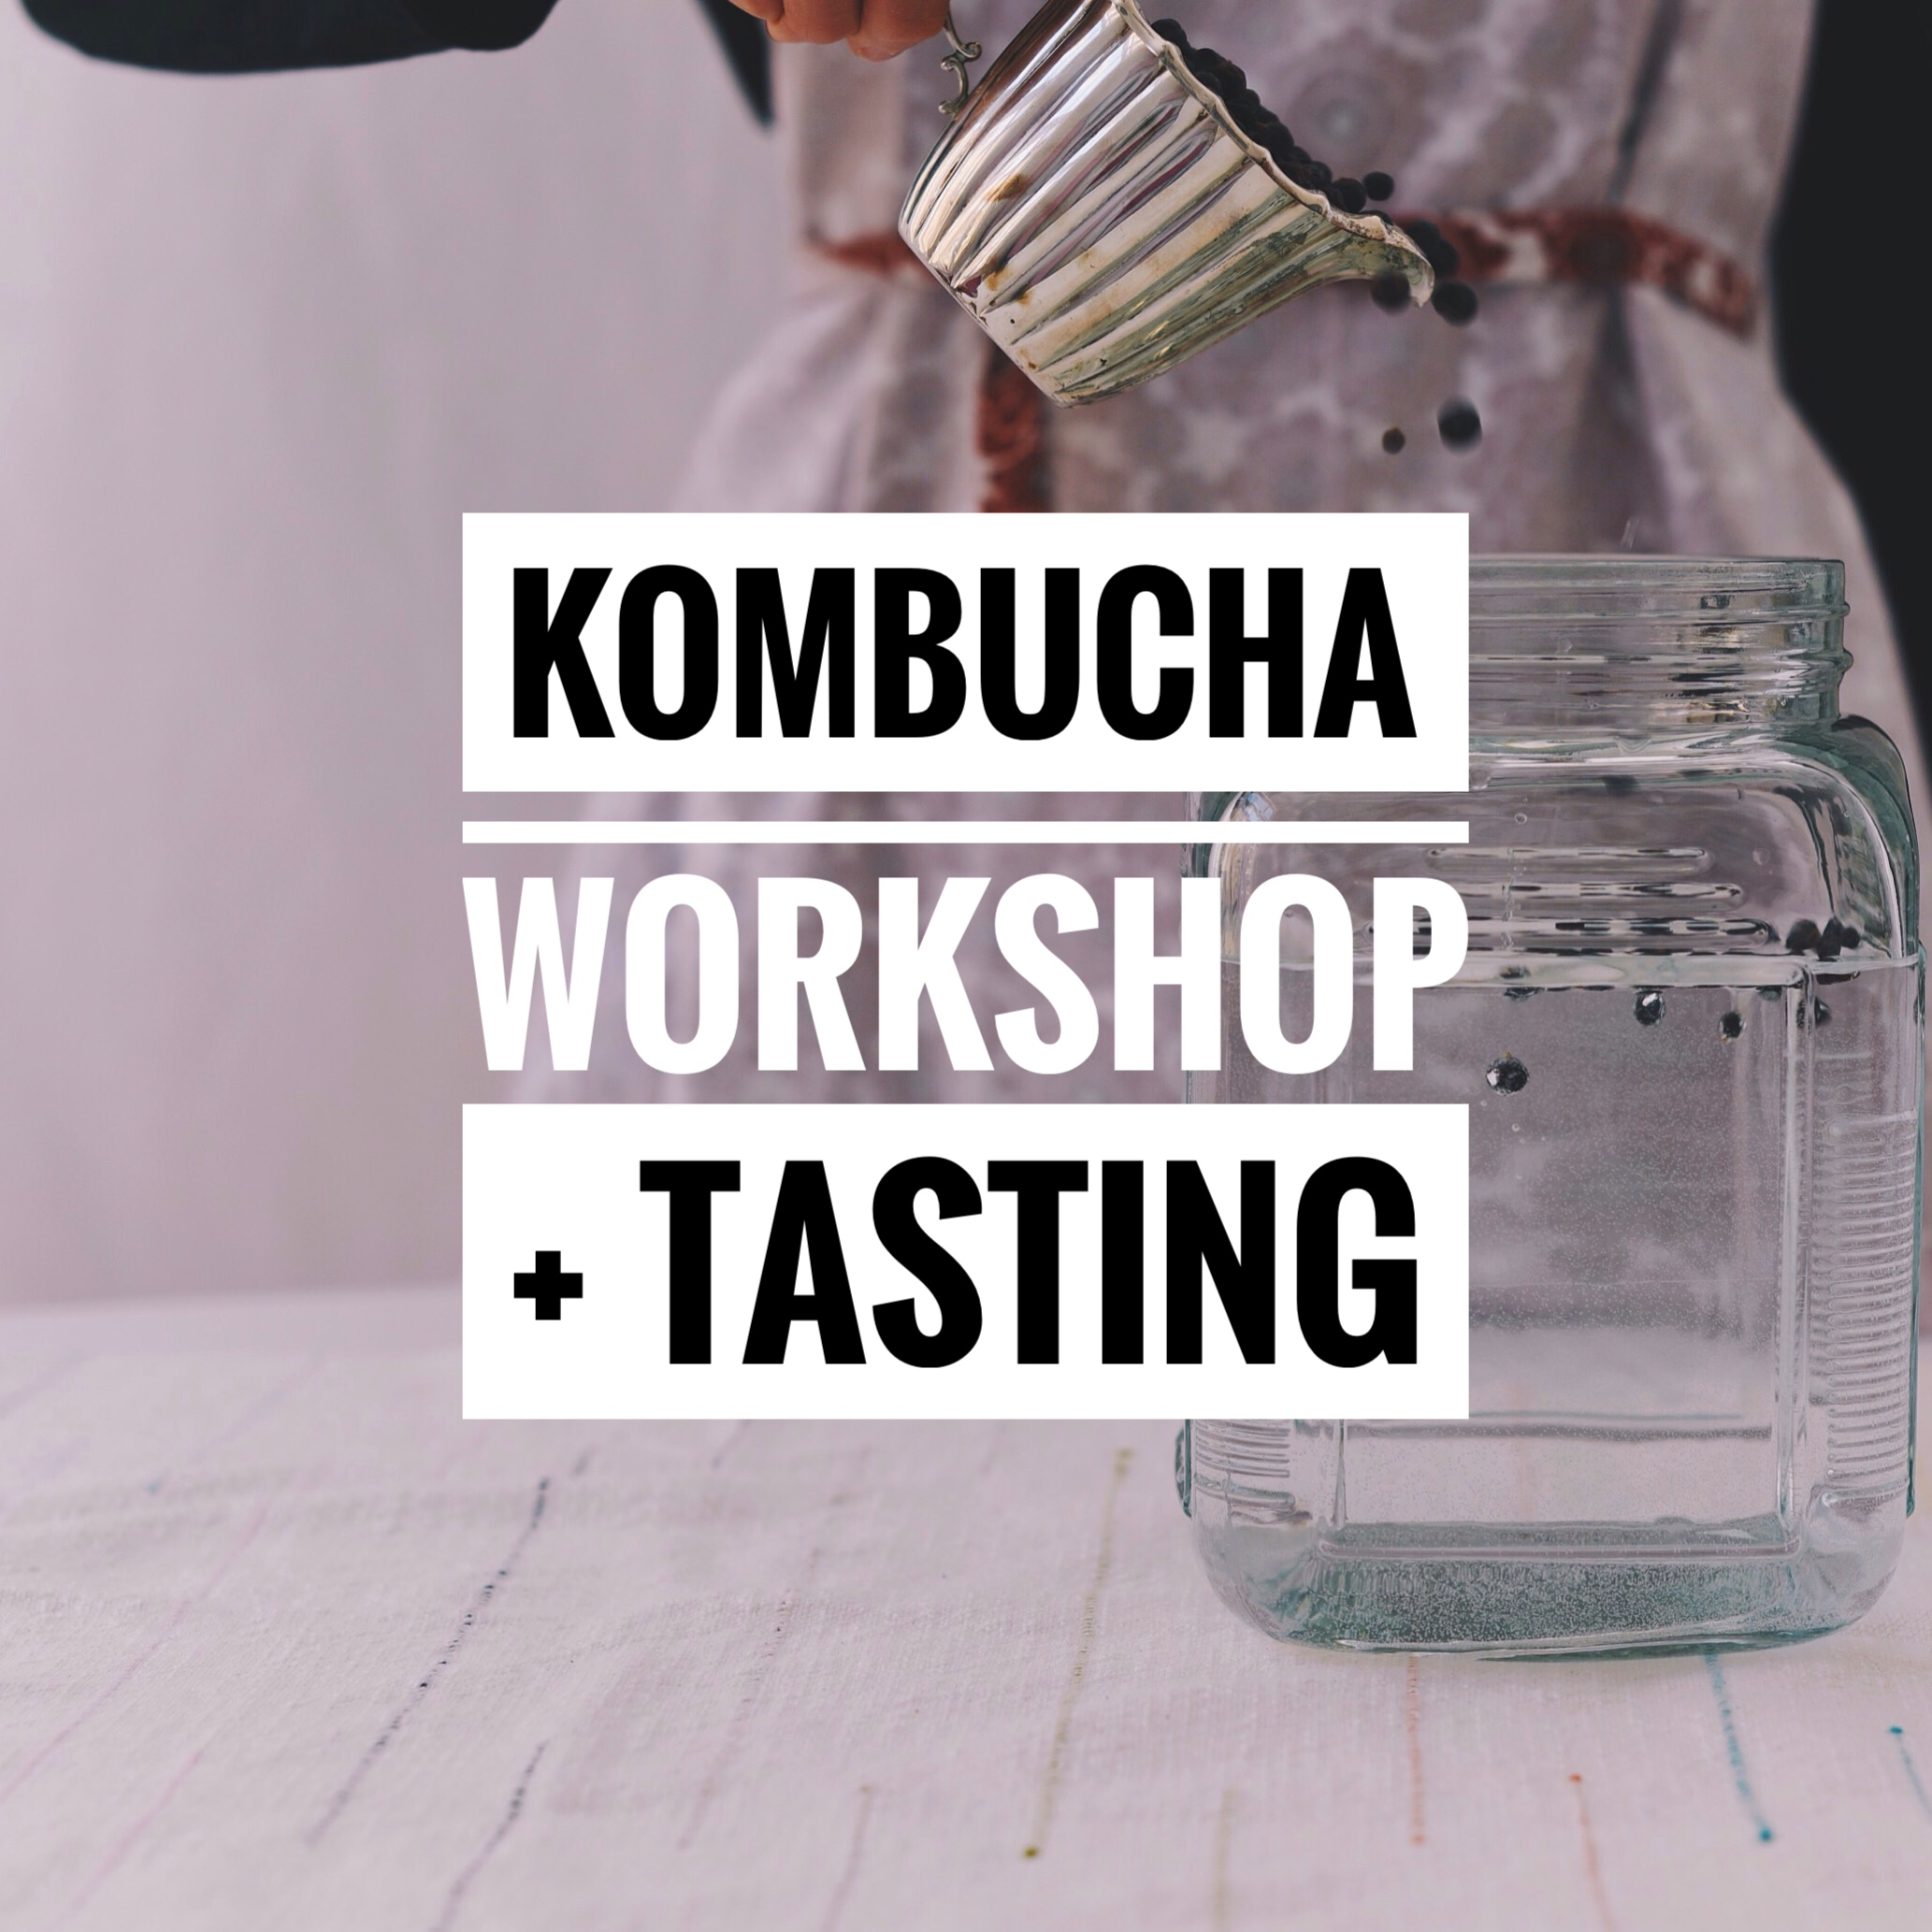 Learn how to make the tasty fermented tea at home! Check out  Mandala Studio  for details.